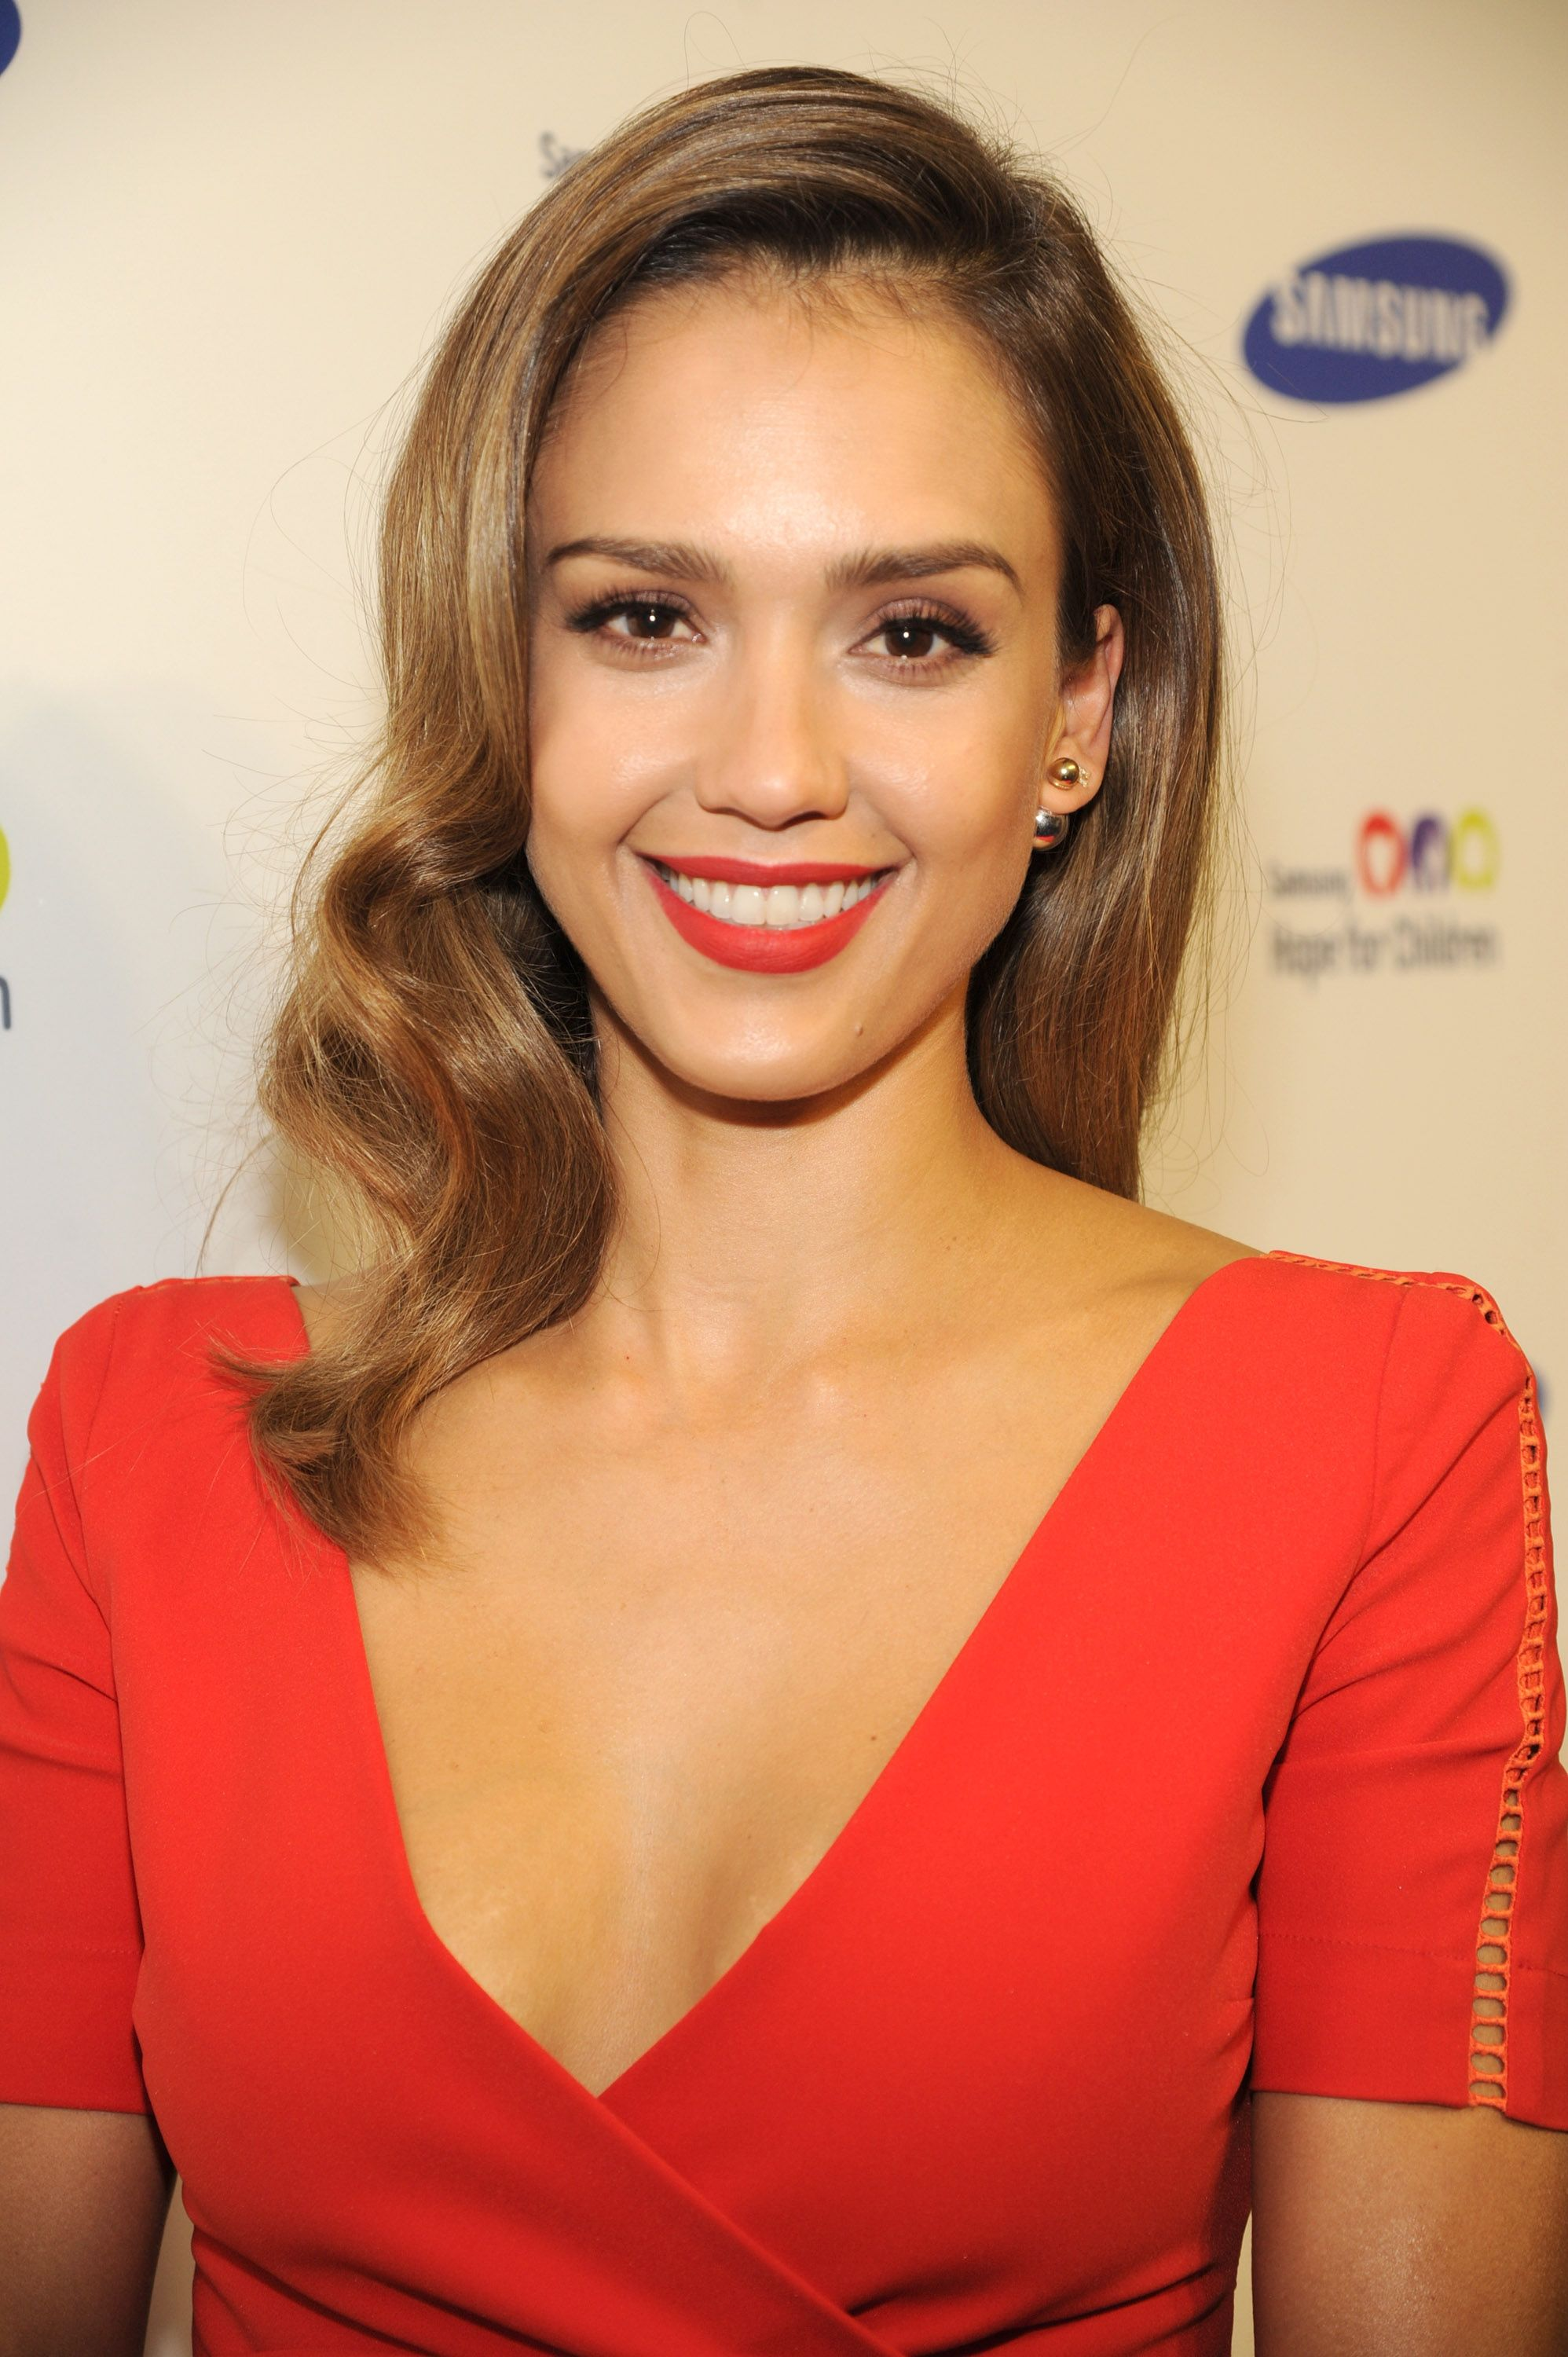 Recreate Jessica Alba's simple elegant eye makeup look